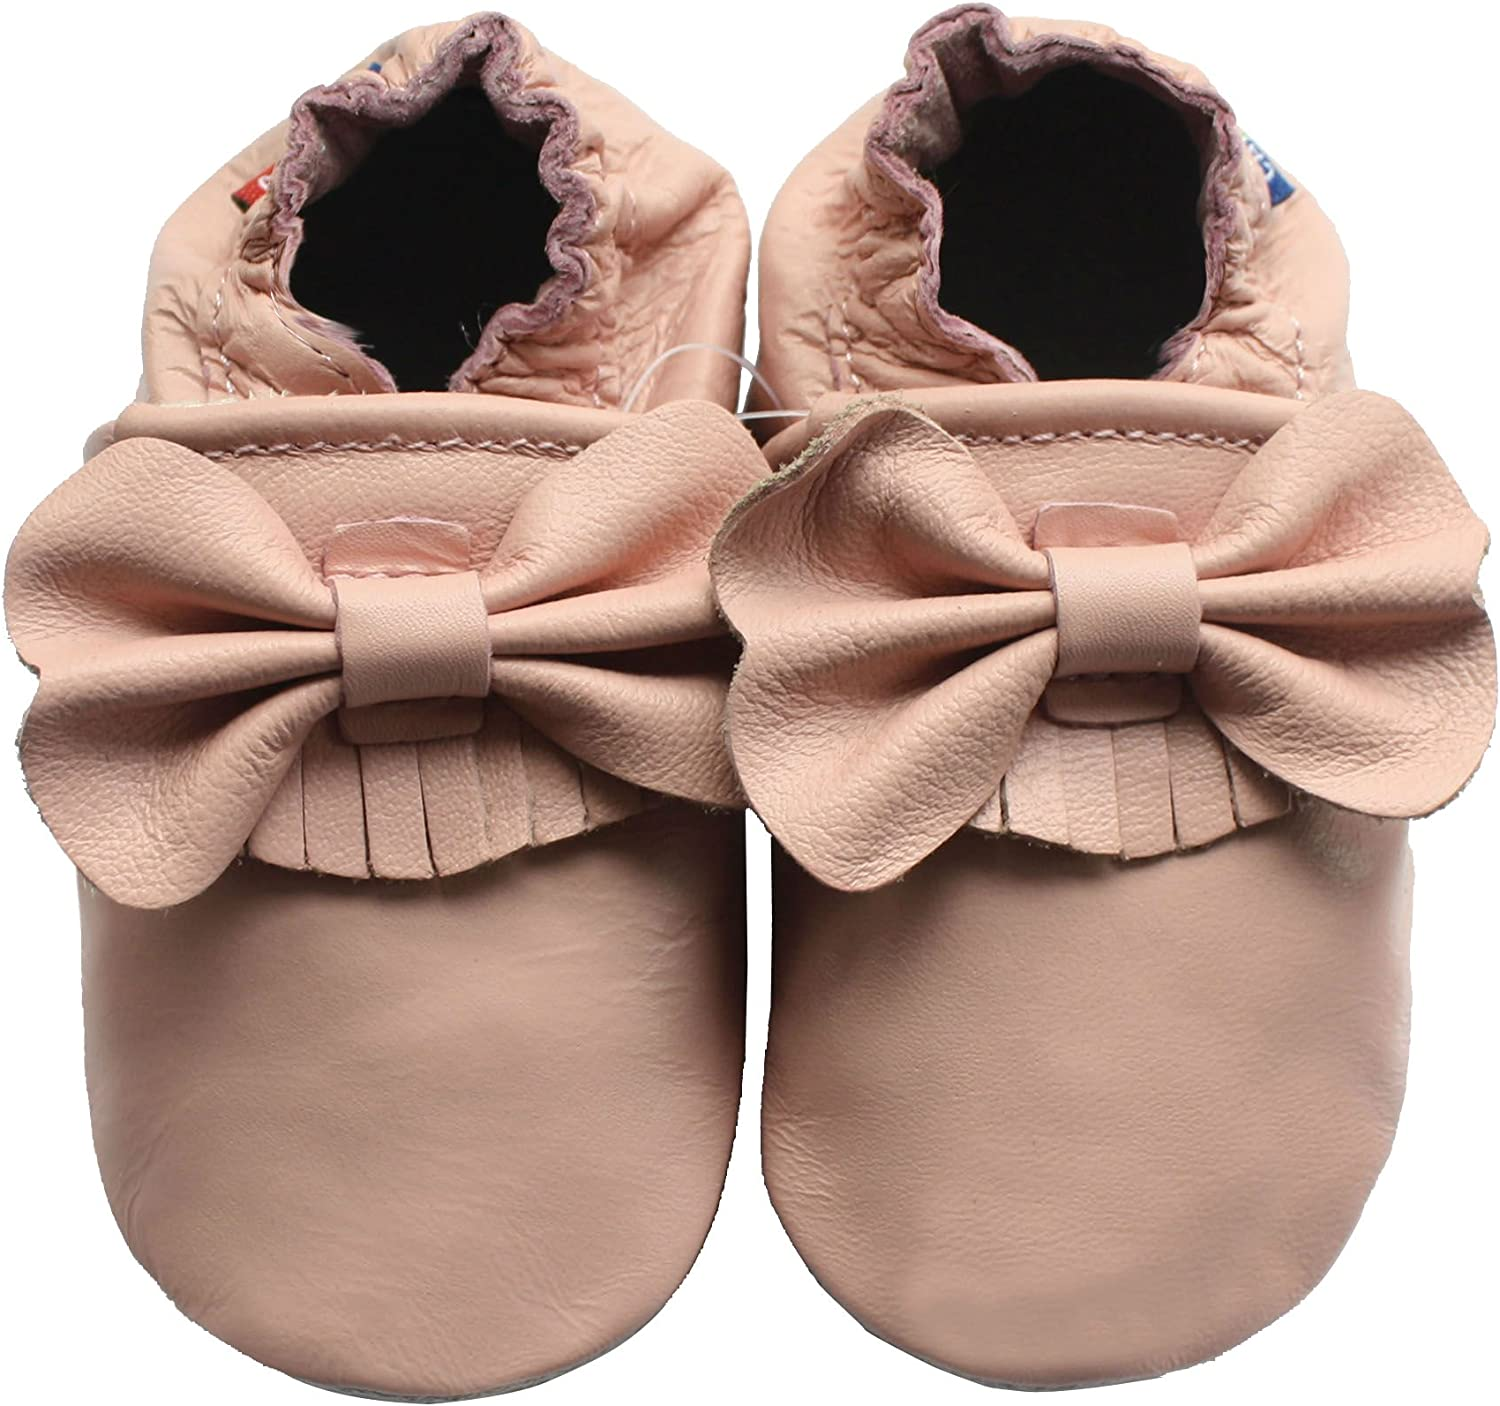 carozoo soft sole leather slippers shoes up to 8 YRS boots//socks baby//toddlers